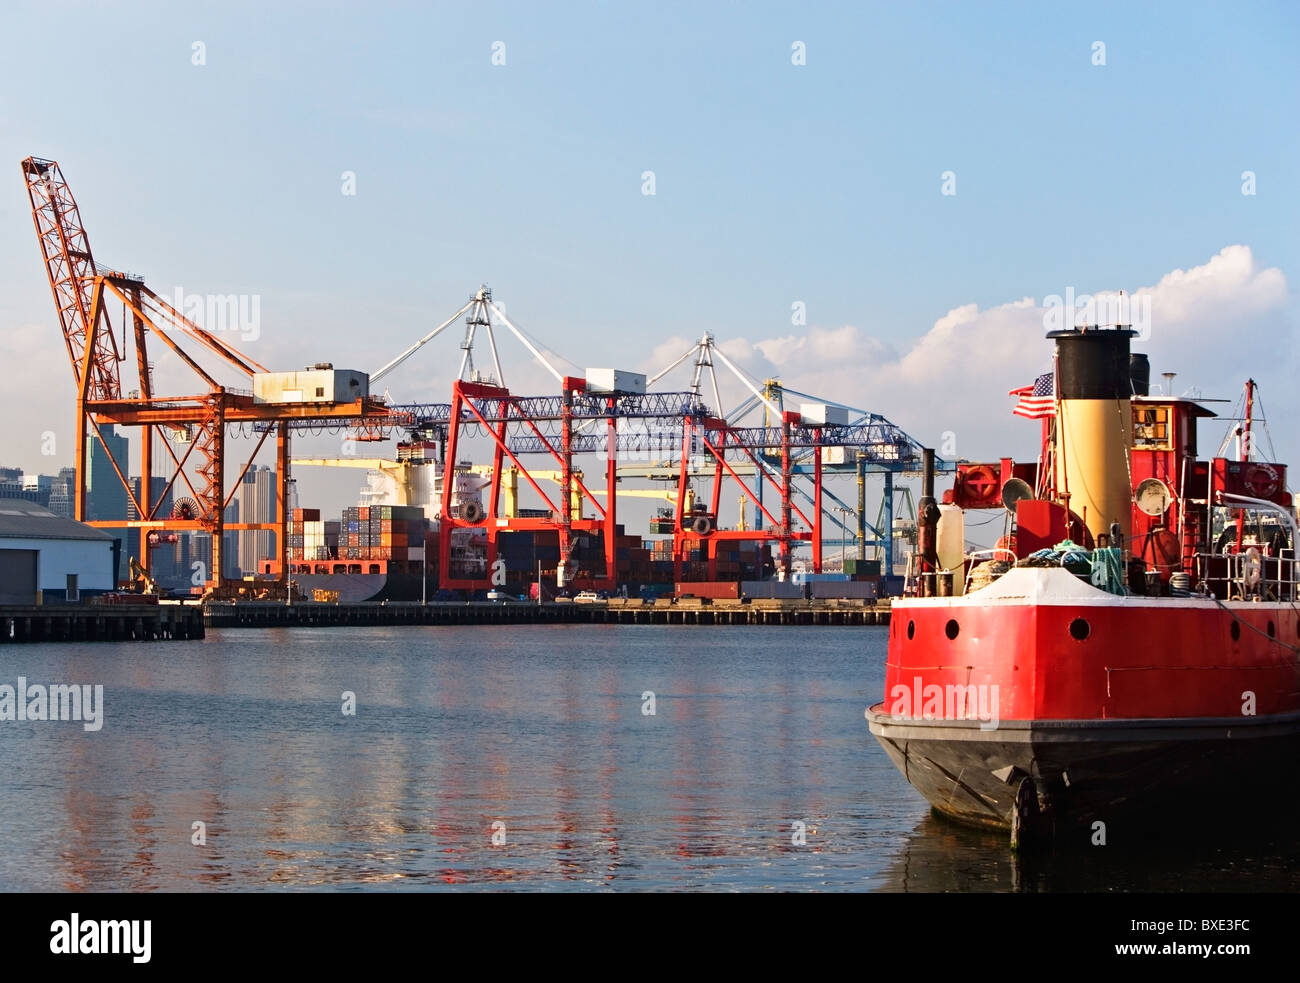 Cargo ships and container crane - Stock Image